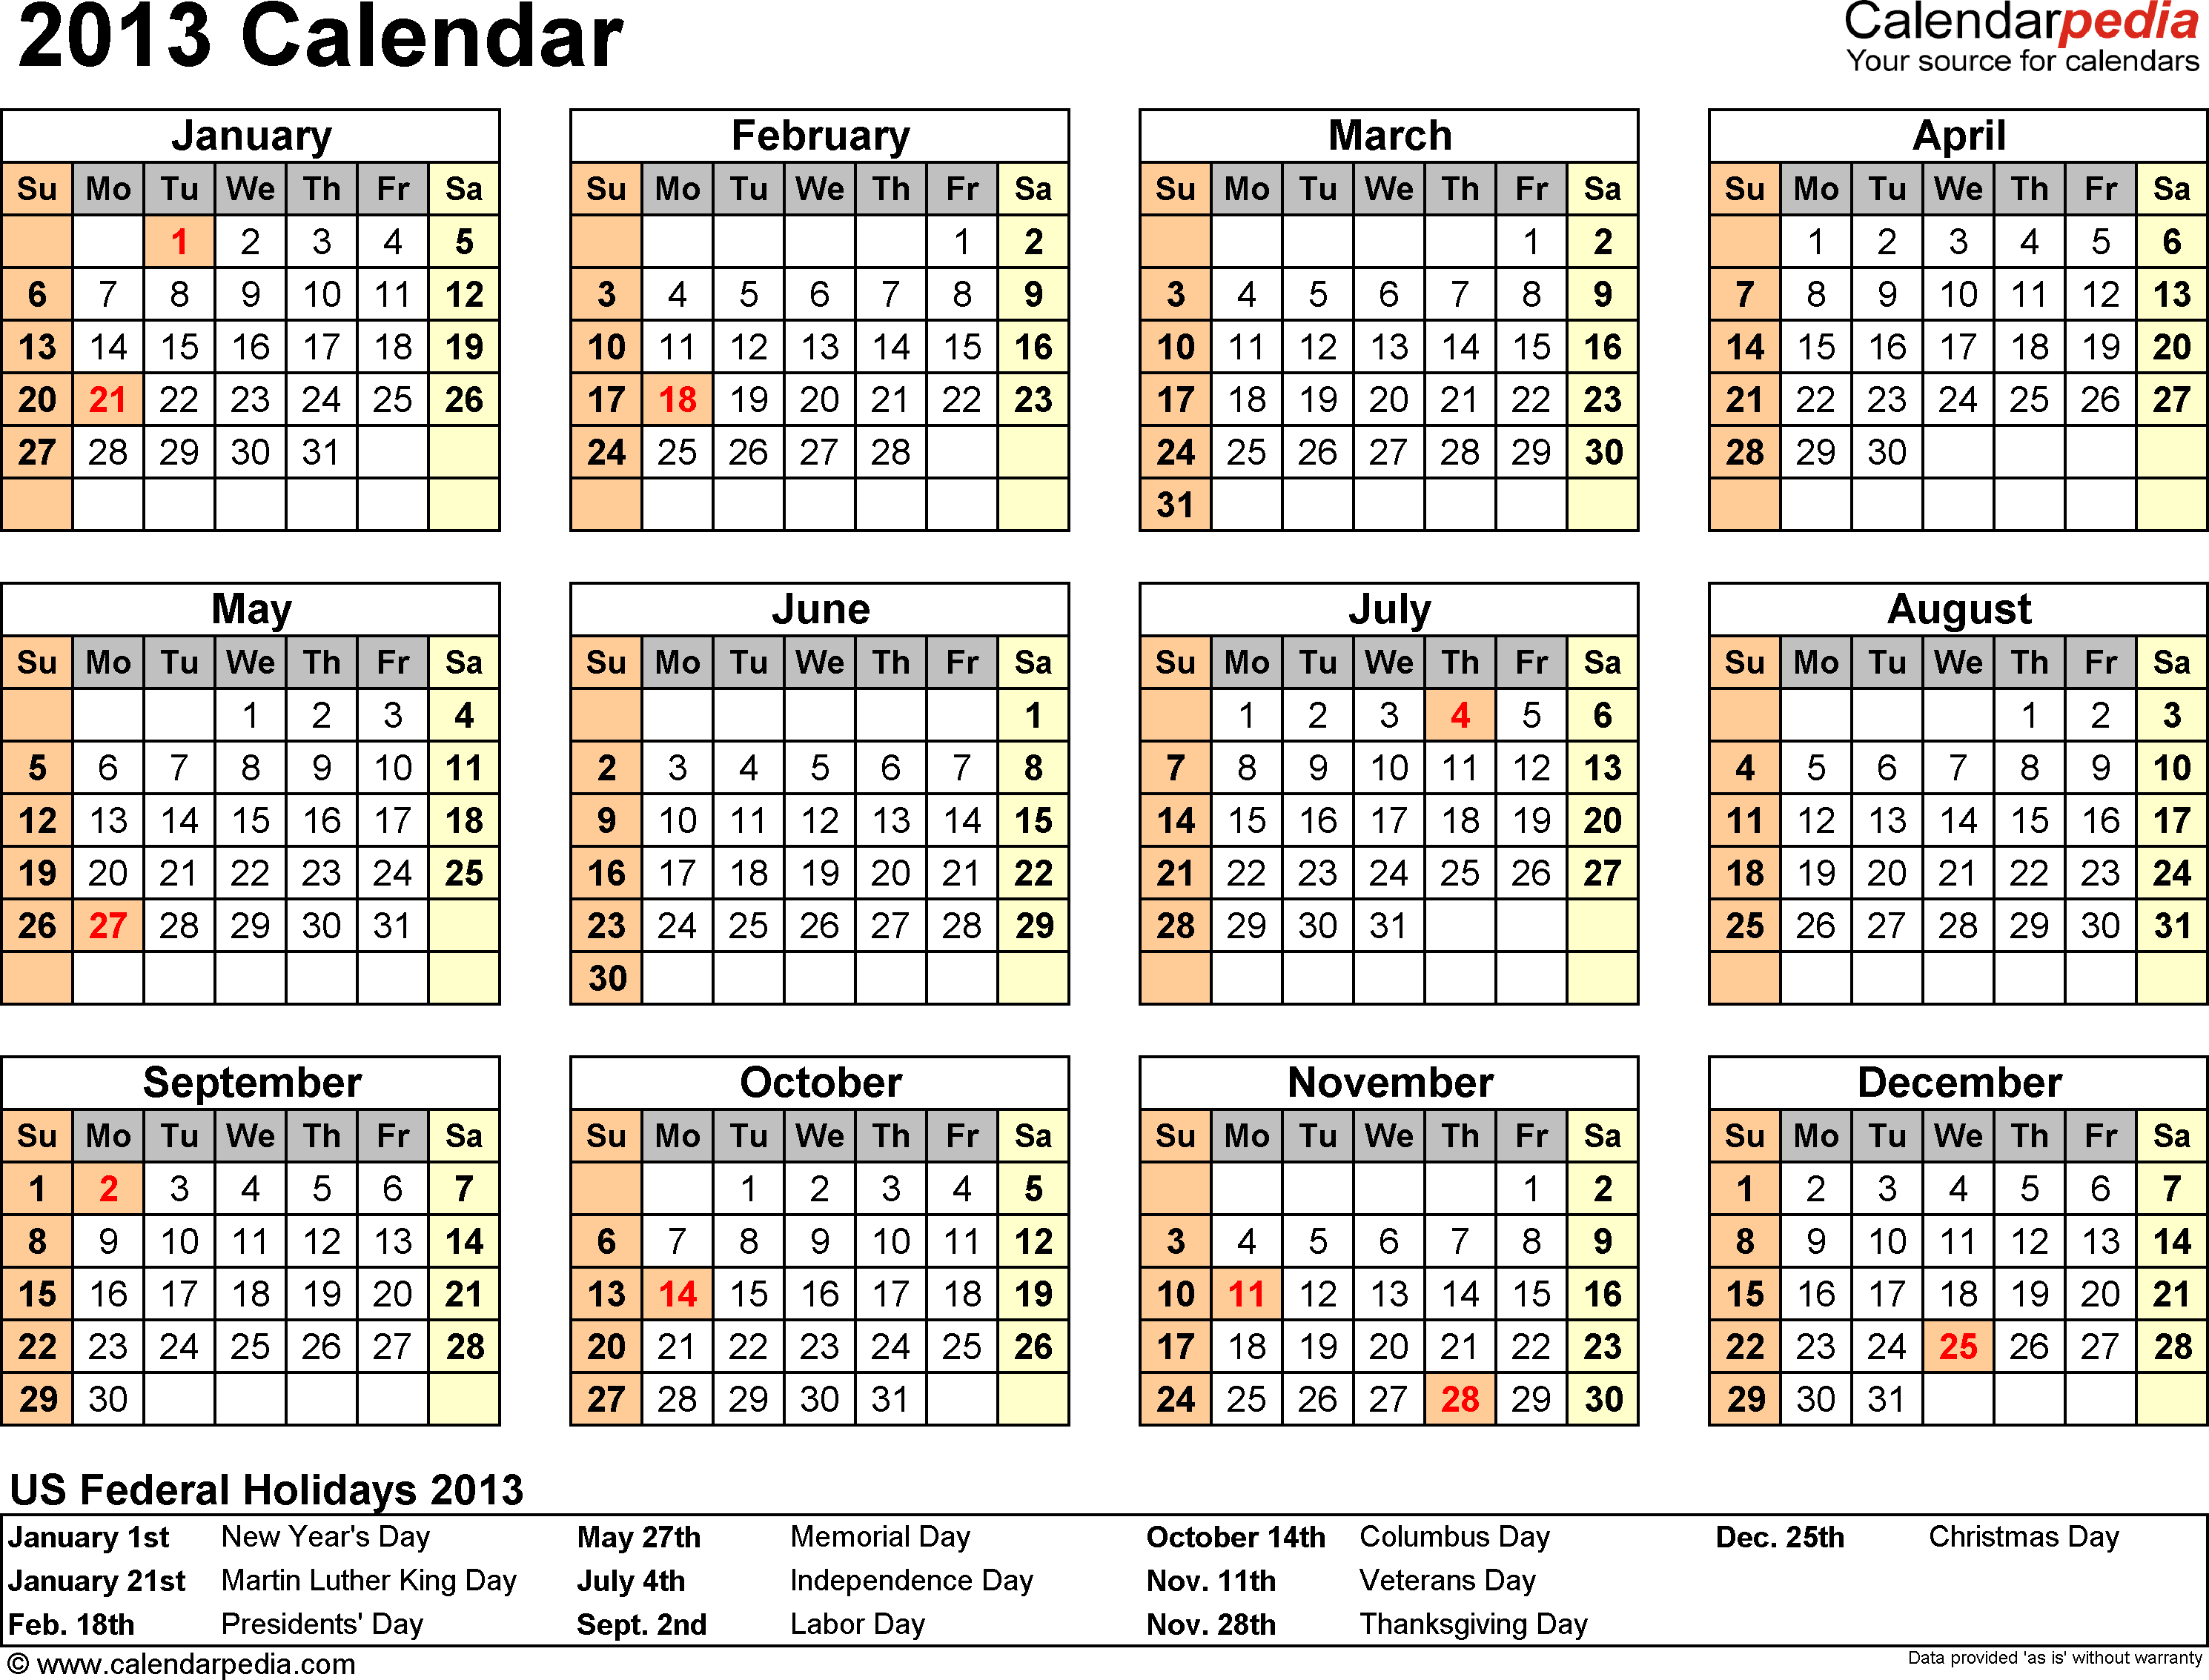 Download Excel template for 2013 calendar template 7: year overview, 1 page, with US federal holidays 2013, paper format: US letter